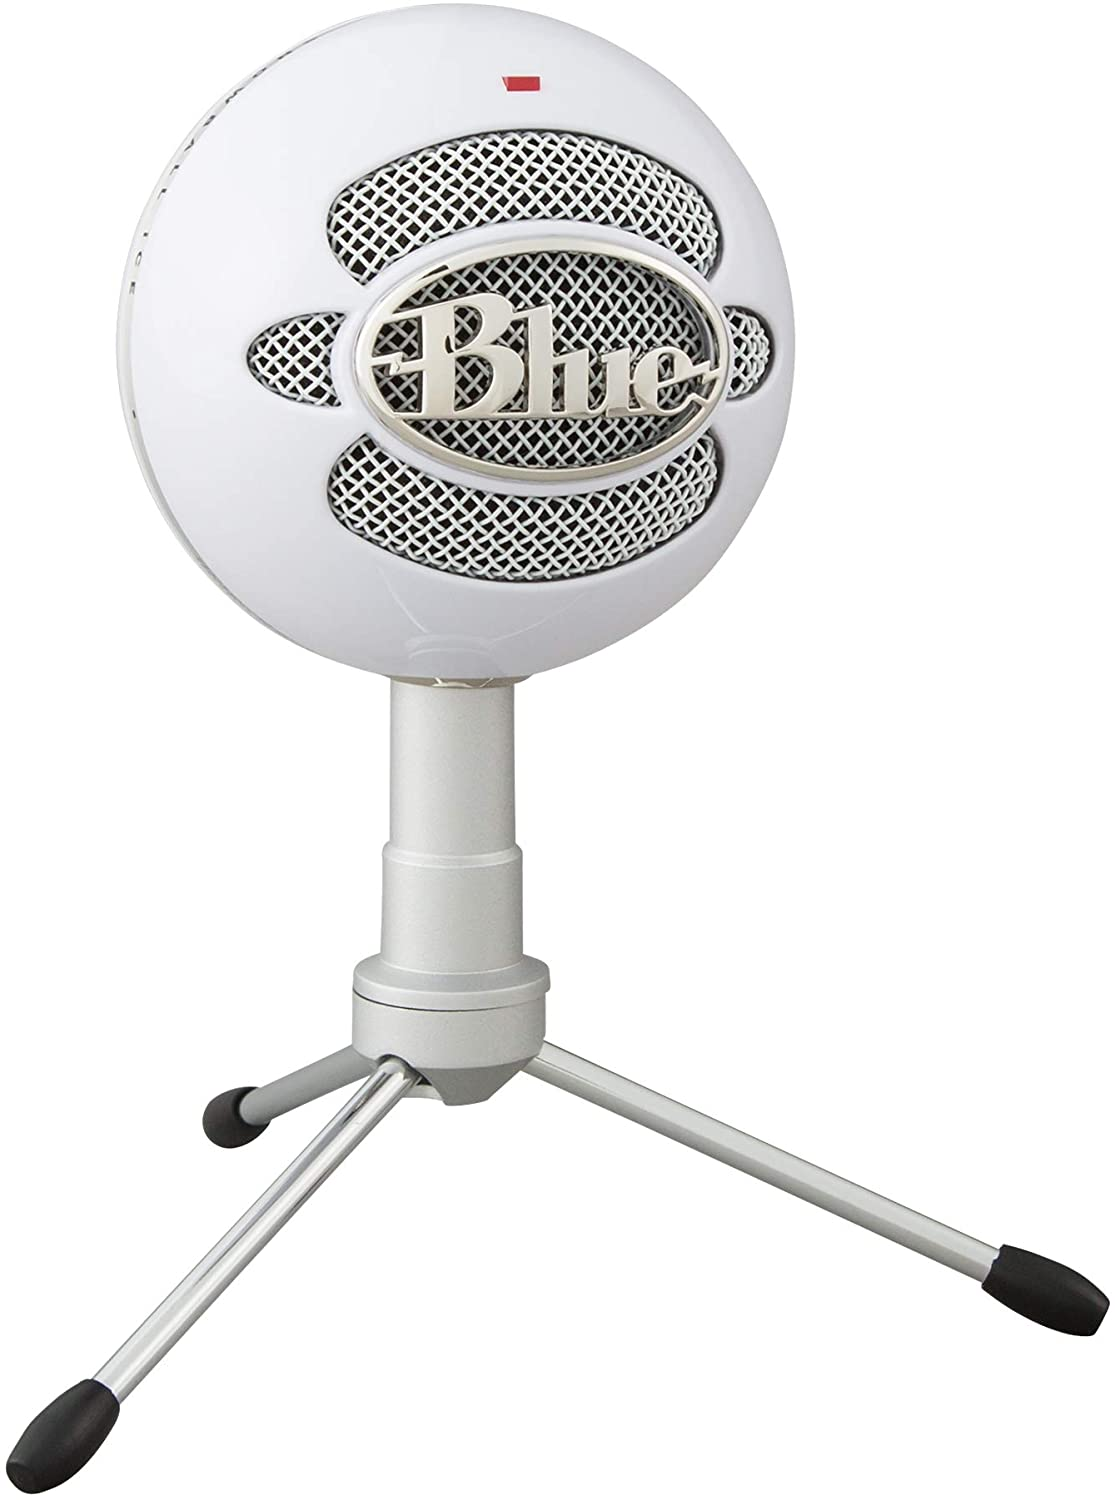 Best Noise-Canceling Microphones for Summer 2020 - Blue Snowball iCE Cardioid Condenser Microphone